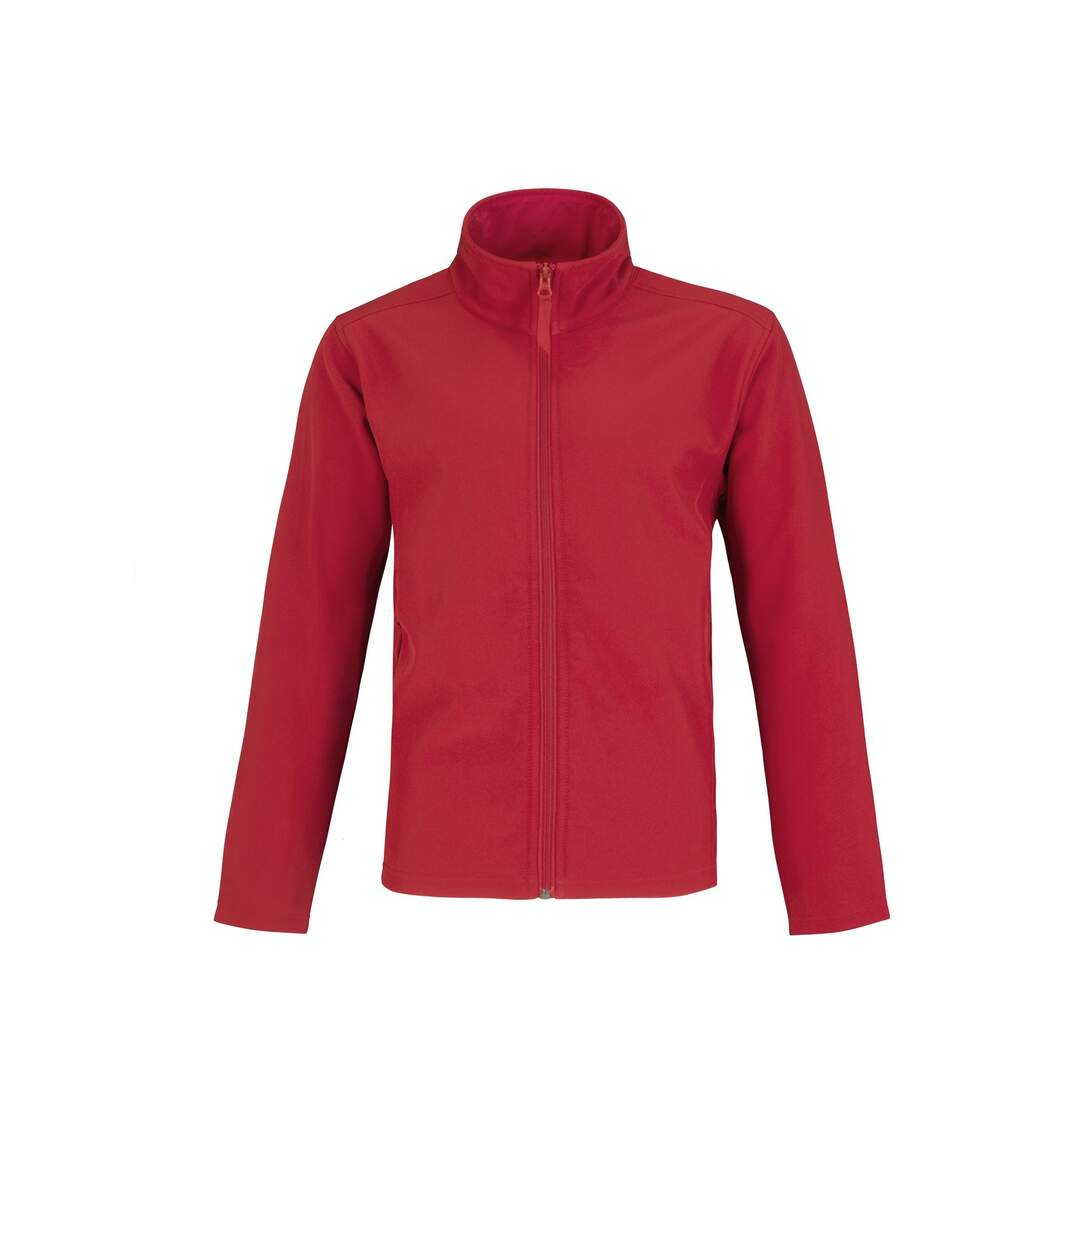 B&C Mens Two Layer Water Repellent Softshell Jacket (Red/ Grey) - UTRW4835